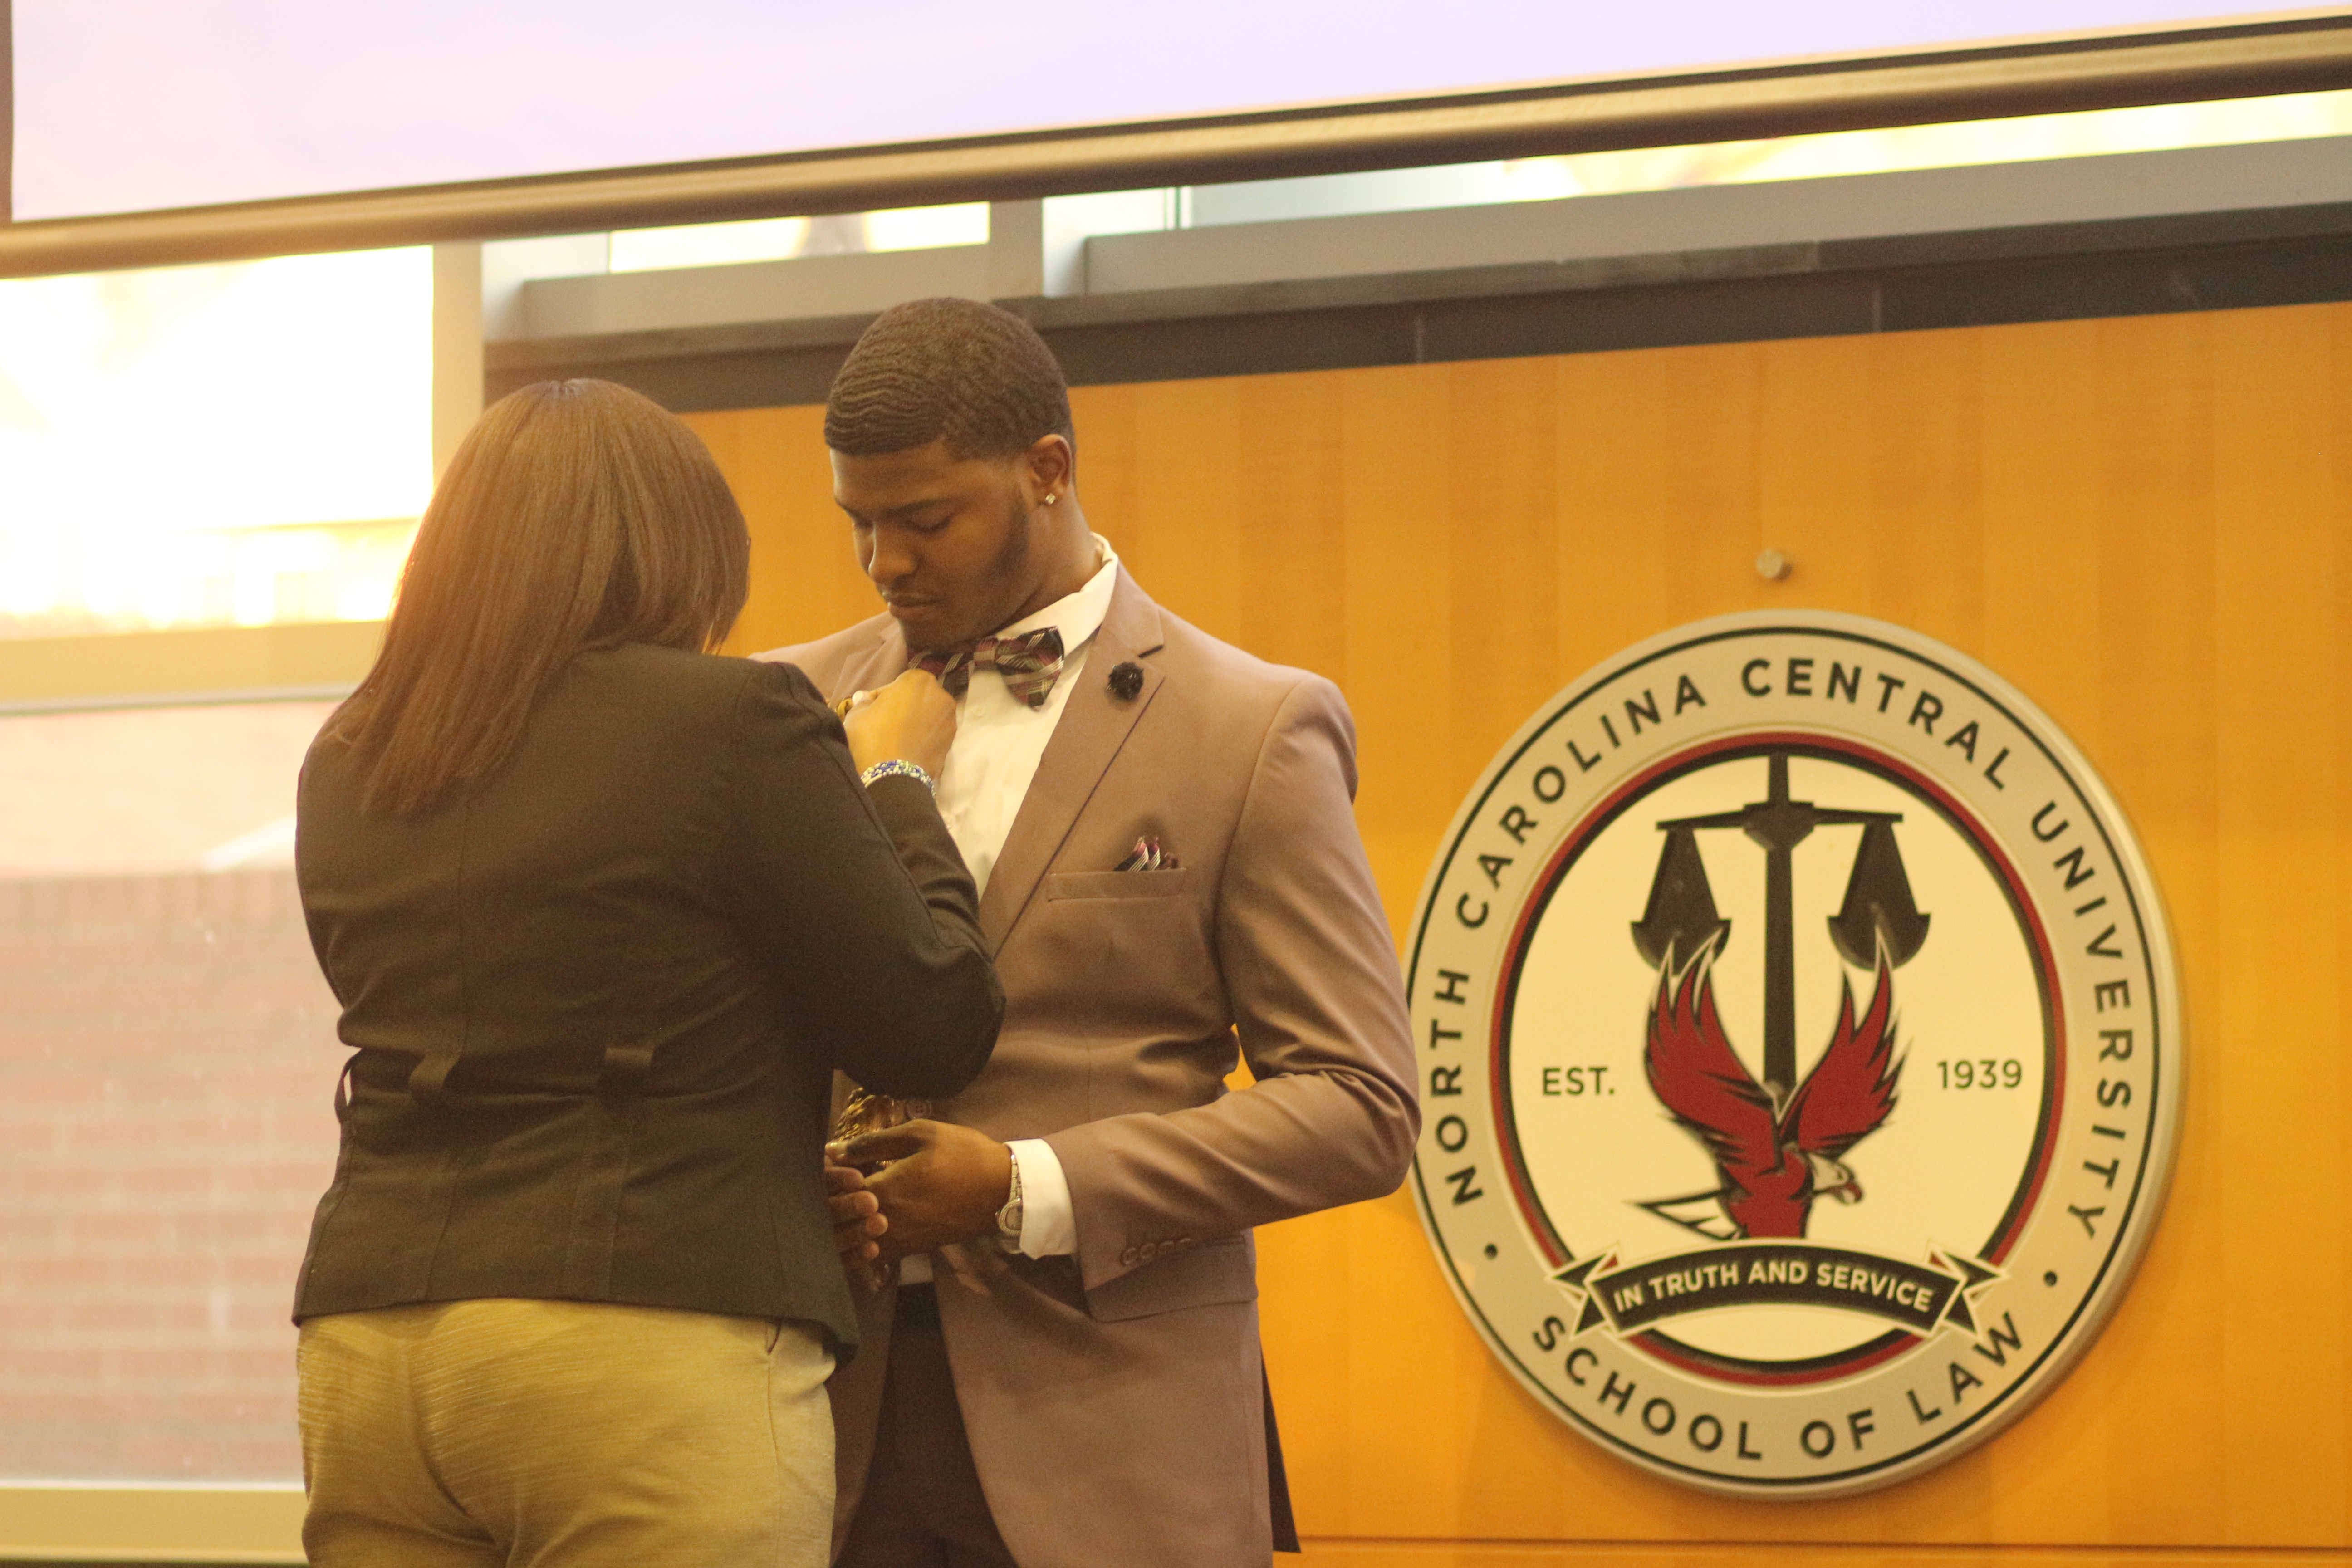 da4b9d80d 2019-20 SGA student body president-elect Brandon Hedgebeth gets pinned at  the Elections Gala in the NCCU School of Law's Great Hall on March 28, 2019.